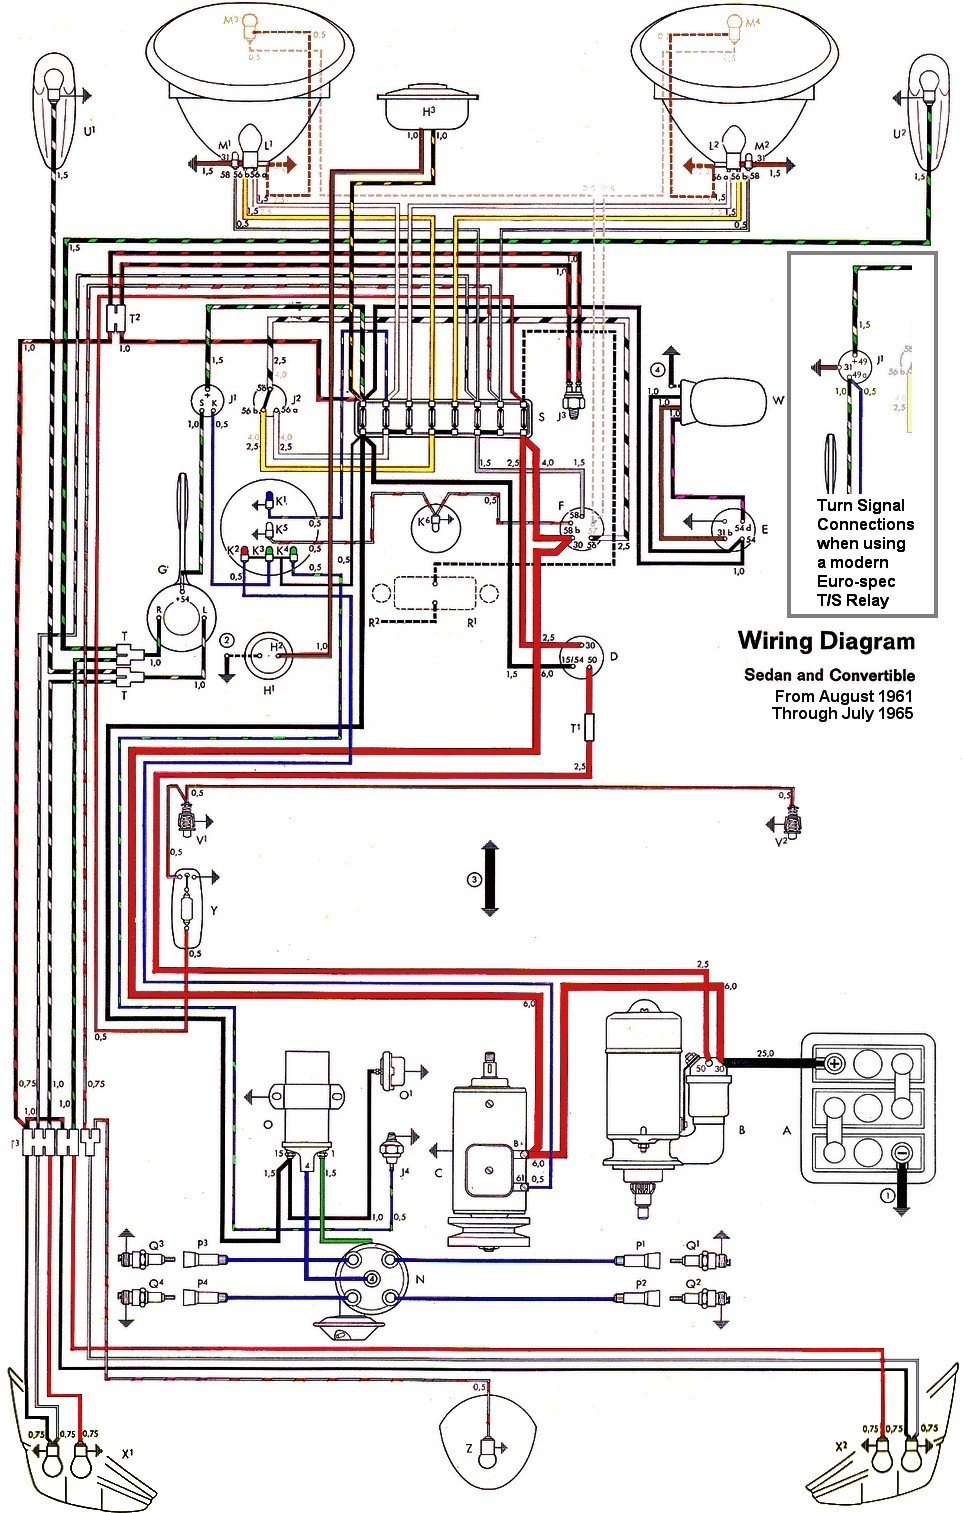 thesamba com type 1 wiring diagrams 69 VW Bug Wiring Schematic vw bug wiring schematic